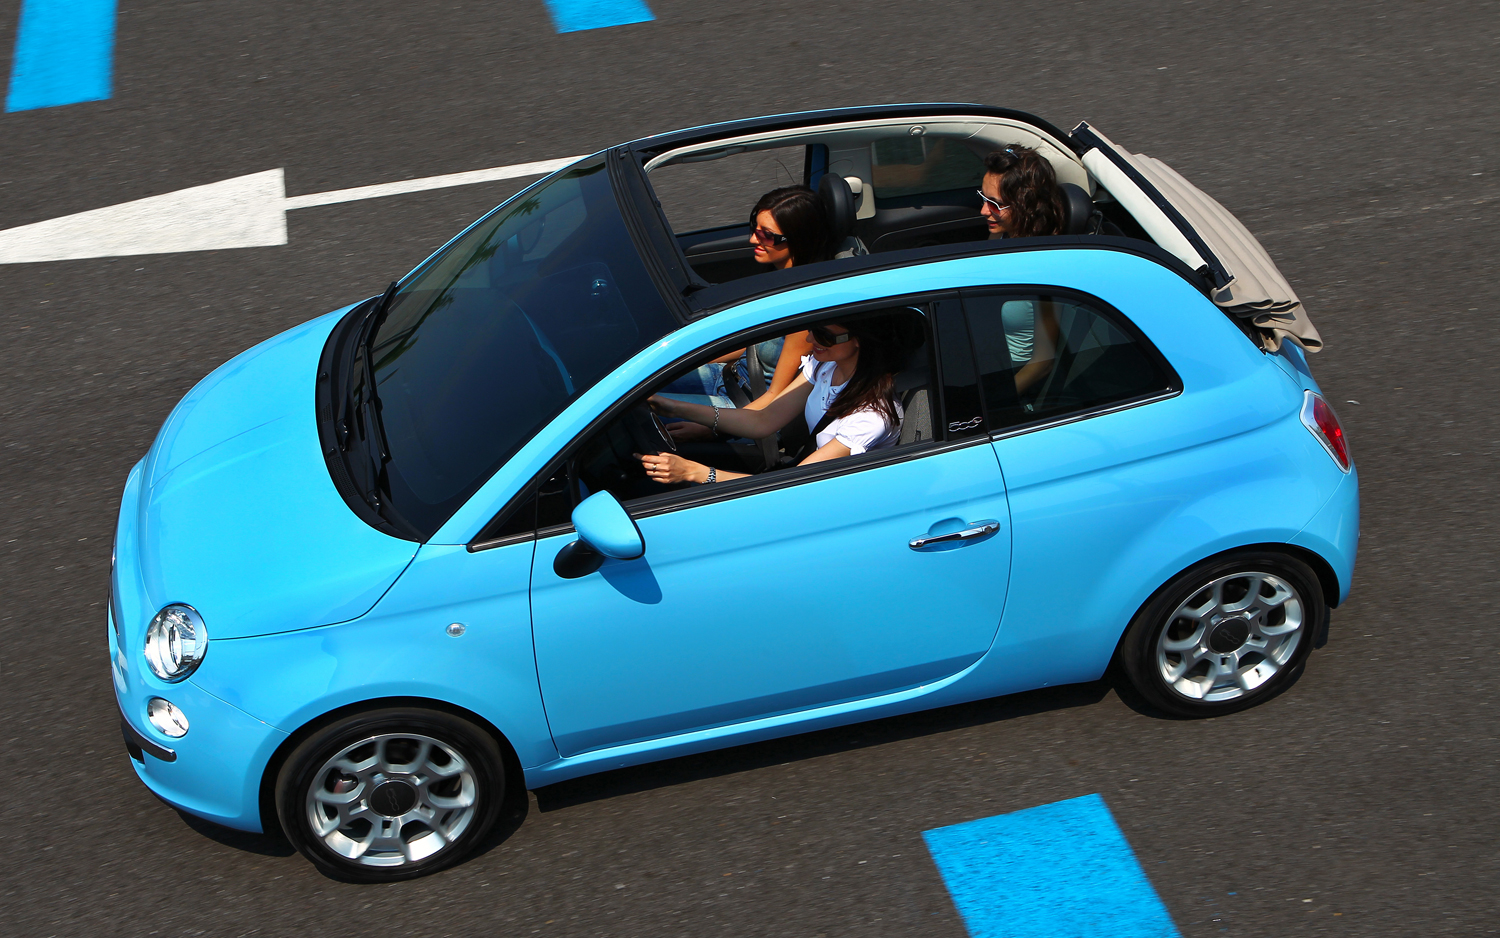 Fiat 500 Convertible 2014 for sale Picture free download image